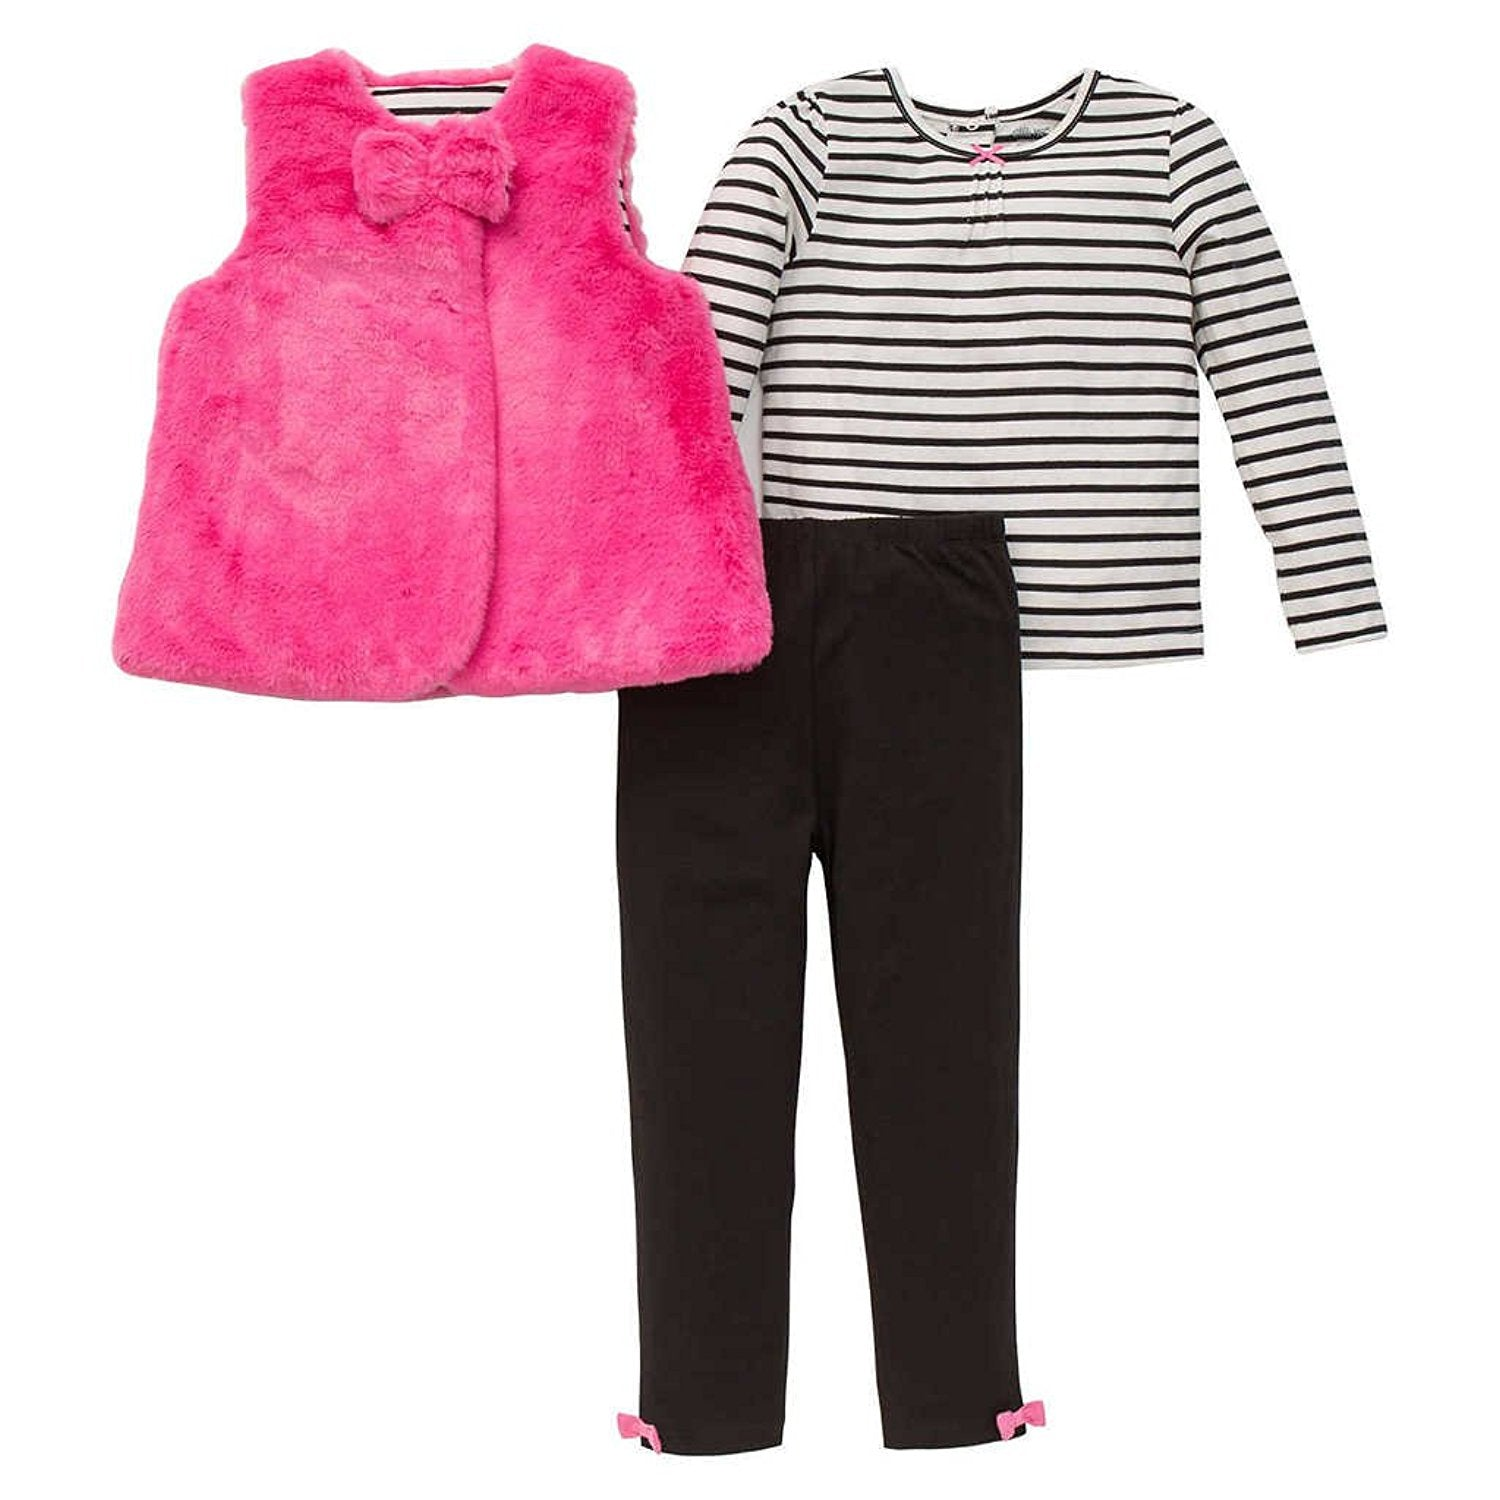 b623c6a20d76a Little Me Girls 3 Piece Pink Quilted Double Breasted Jacket, Leggings and  Long Sleeved Shirt. Tap to expand